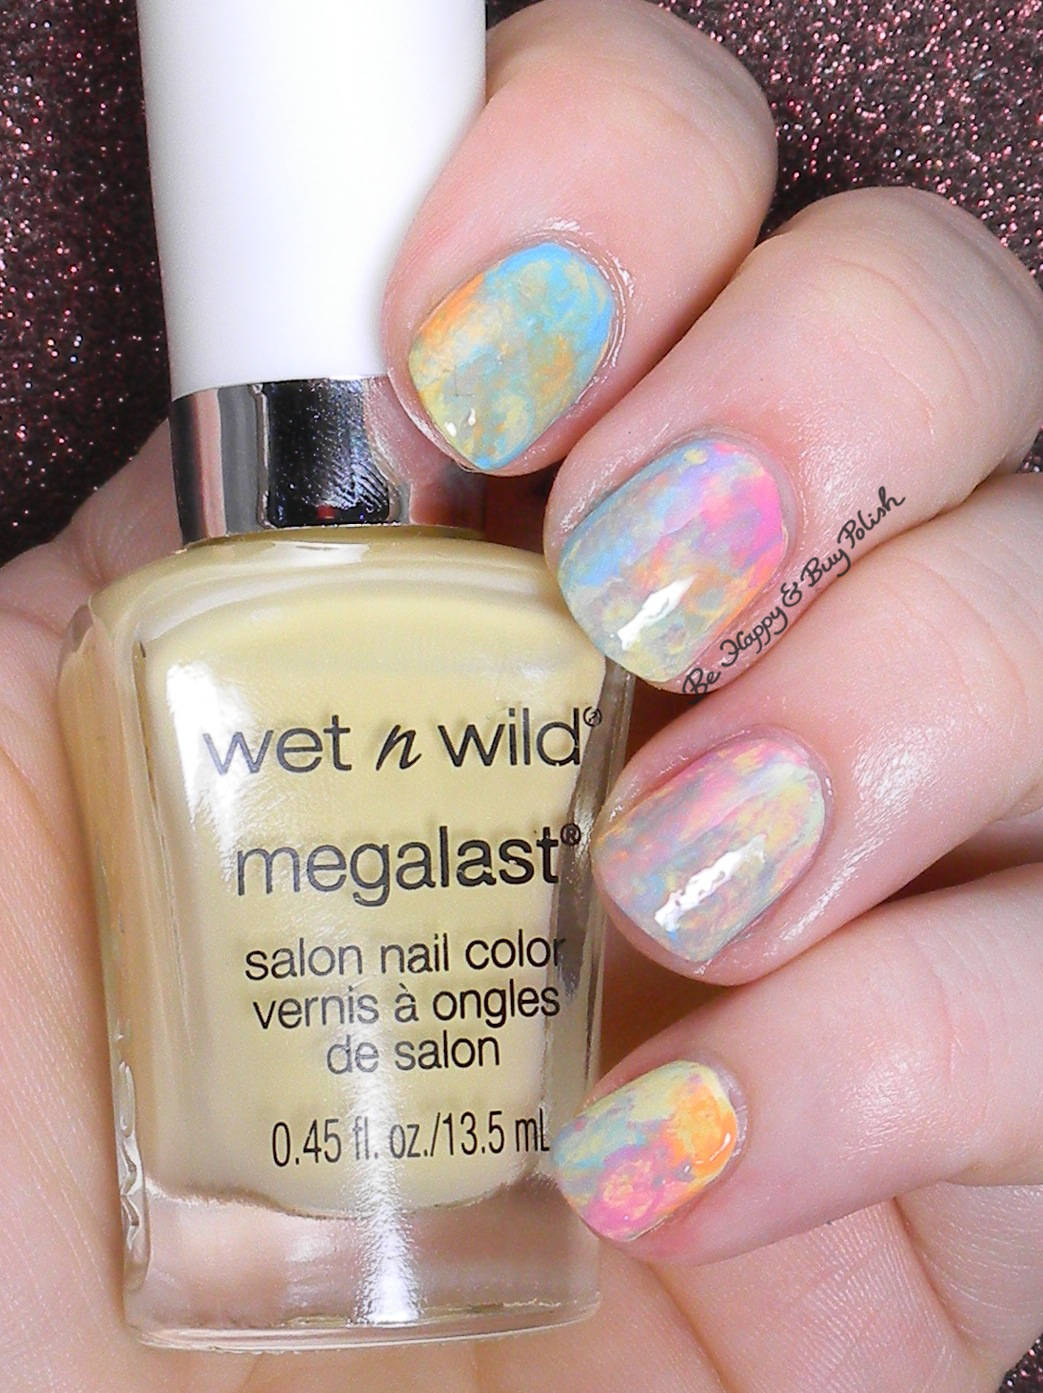 Wet n wild california dreamin nail polish collection swatches wet n wild california dreamin splotched nail art be happy and buy polish prinsesfo Choice Image